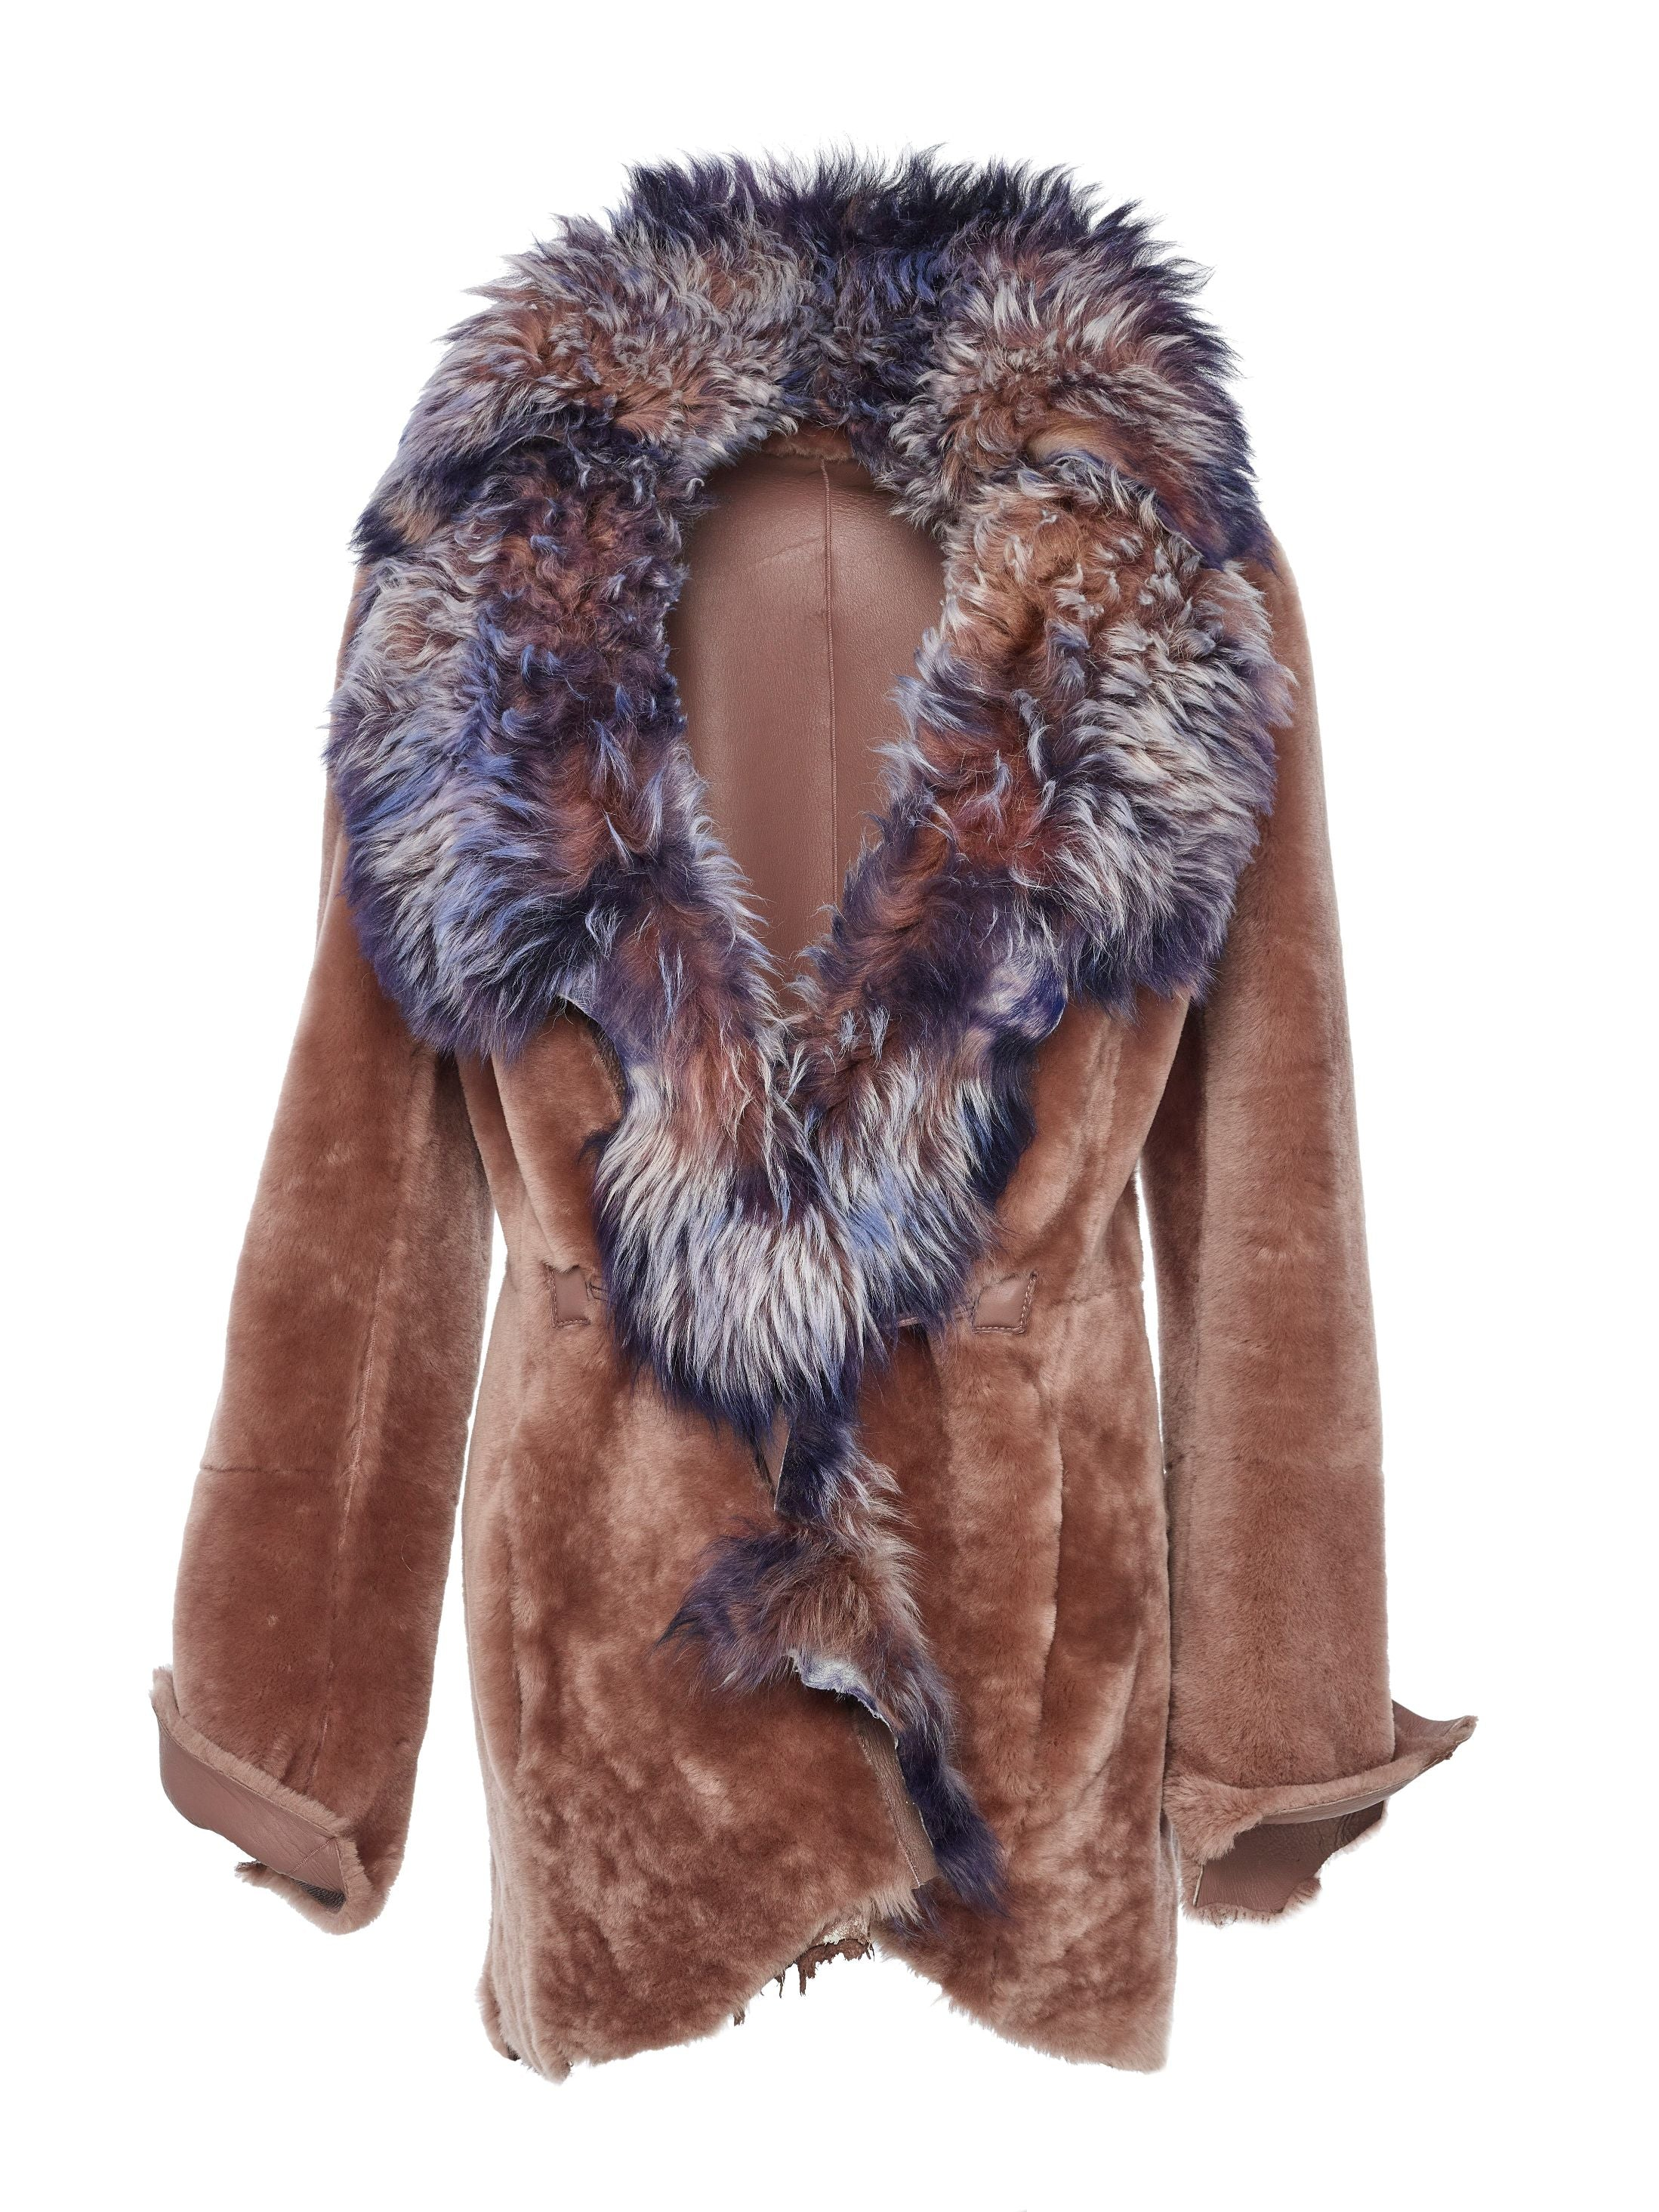 Spanish lamb blossoms with elegance upon reversing from nappa to luxuriously soft fur